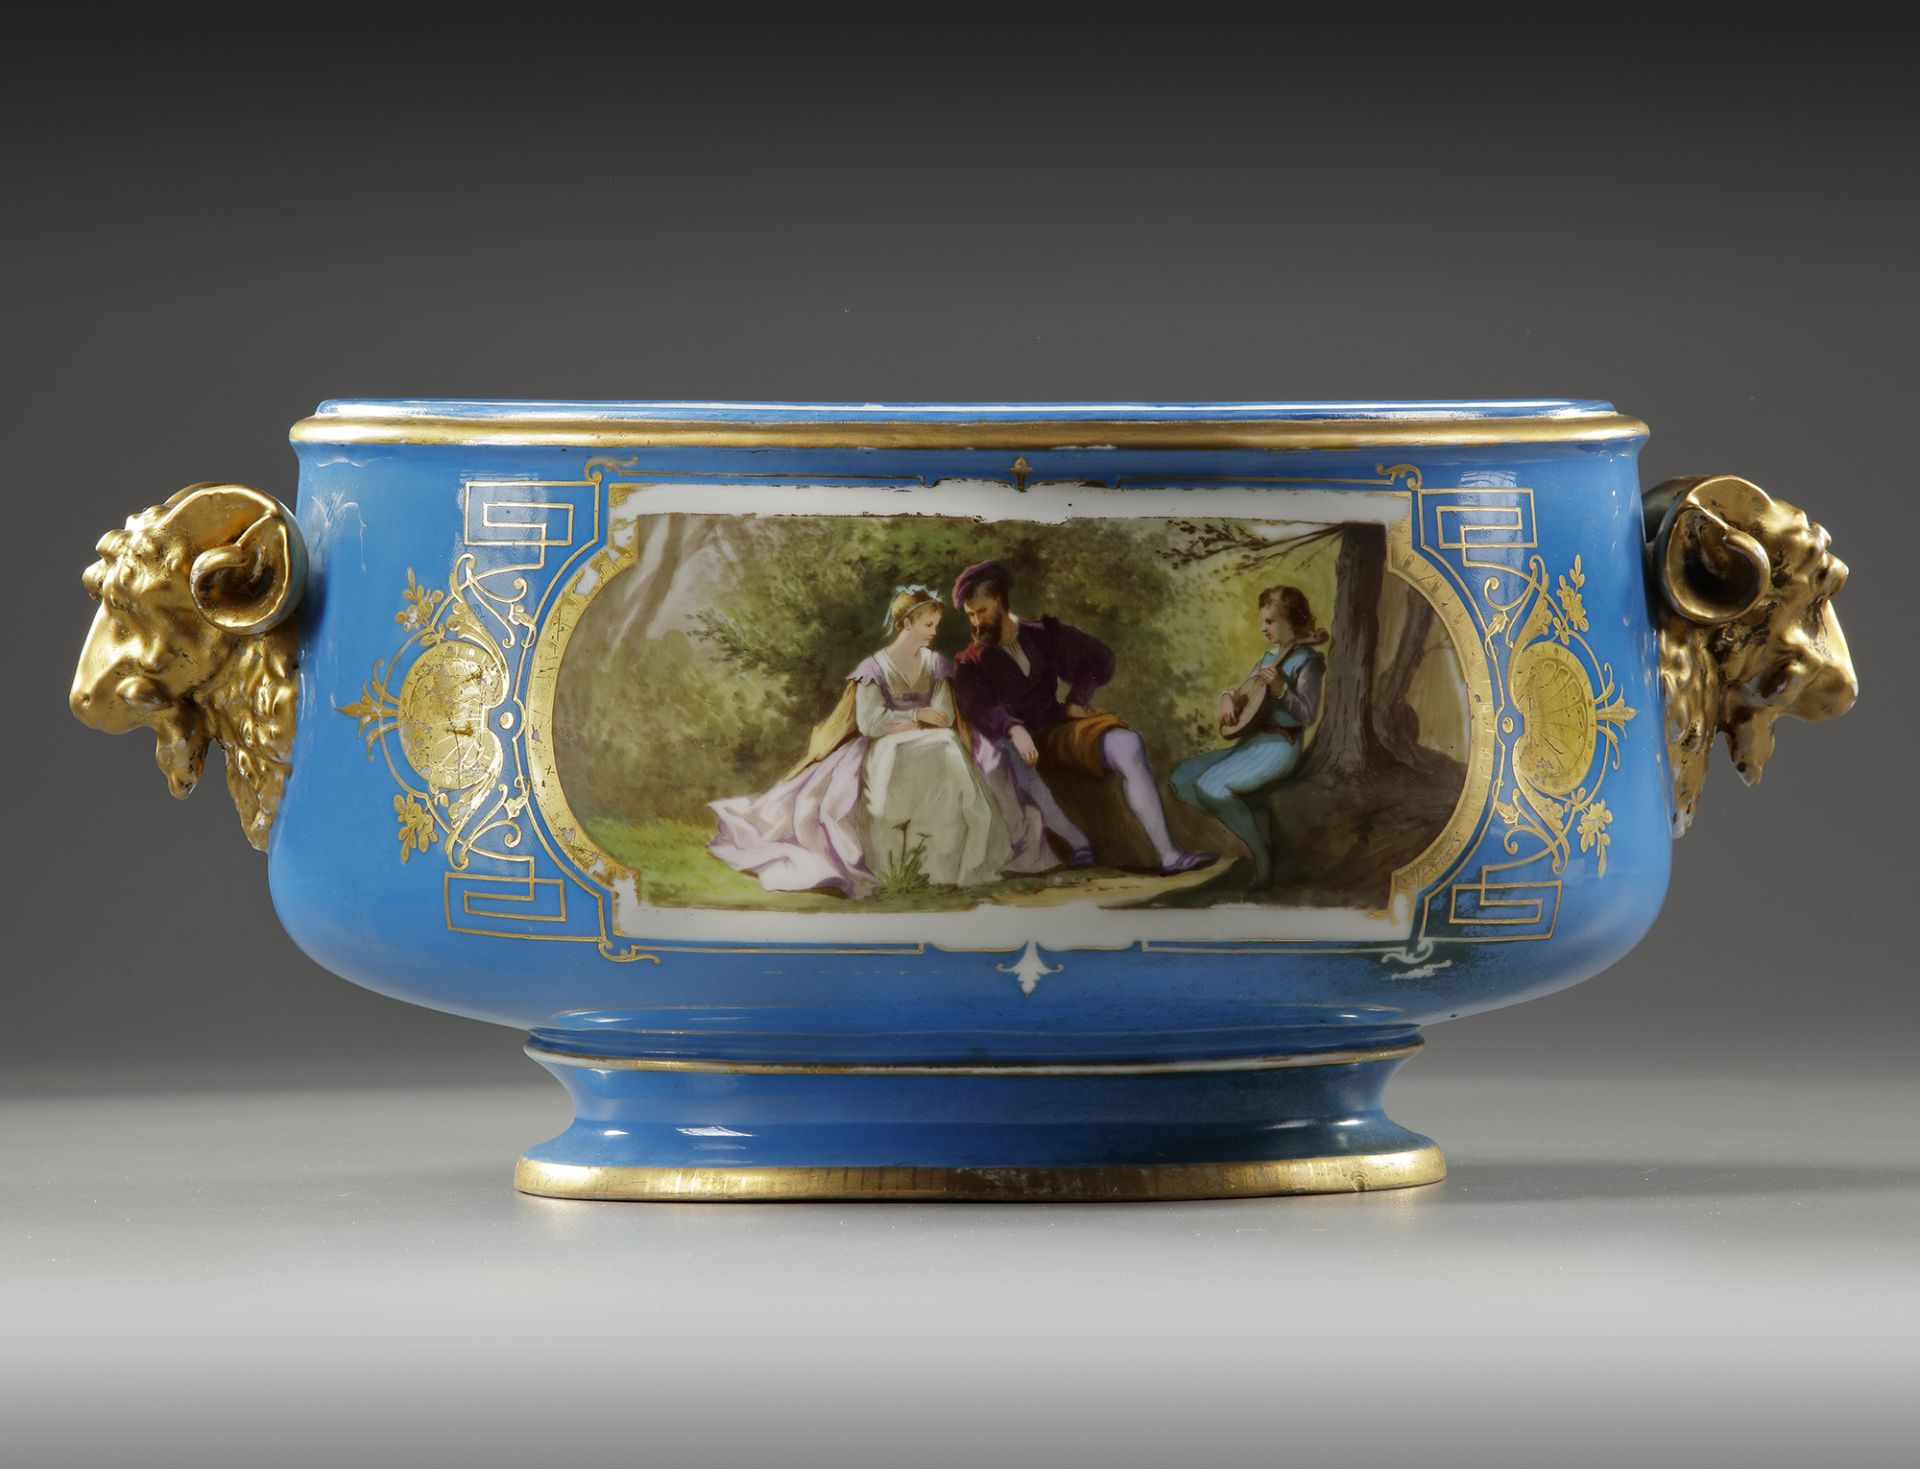 A FRENCH SEVRES PORCELAIN CUP, LATE 19TH CENTURY